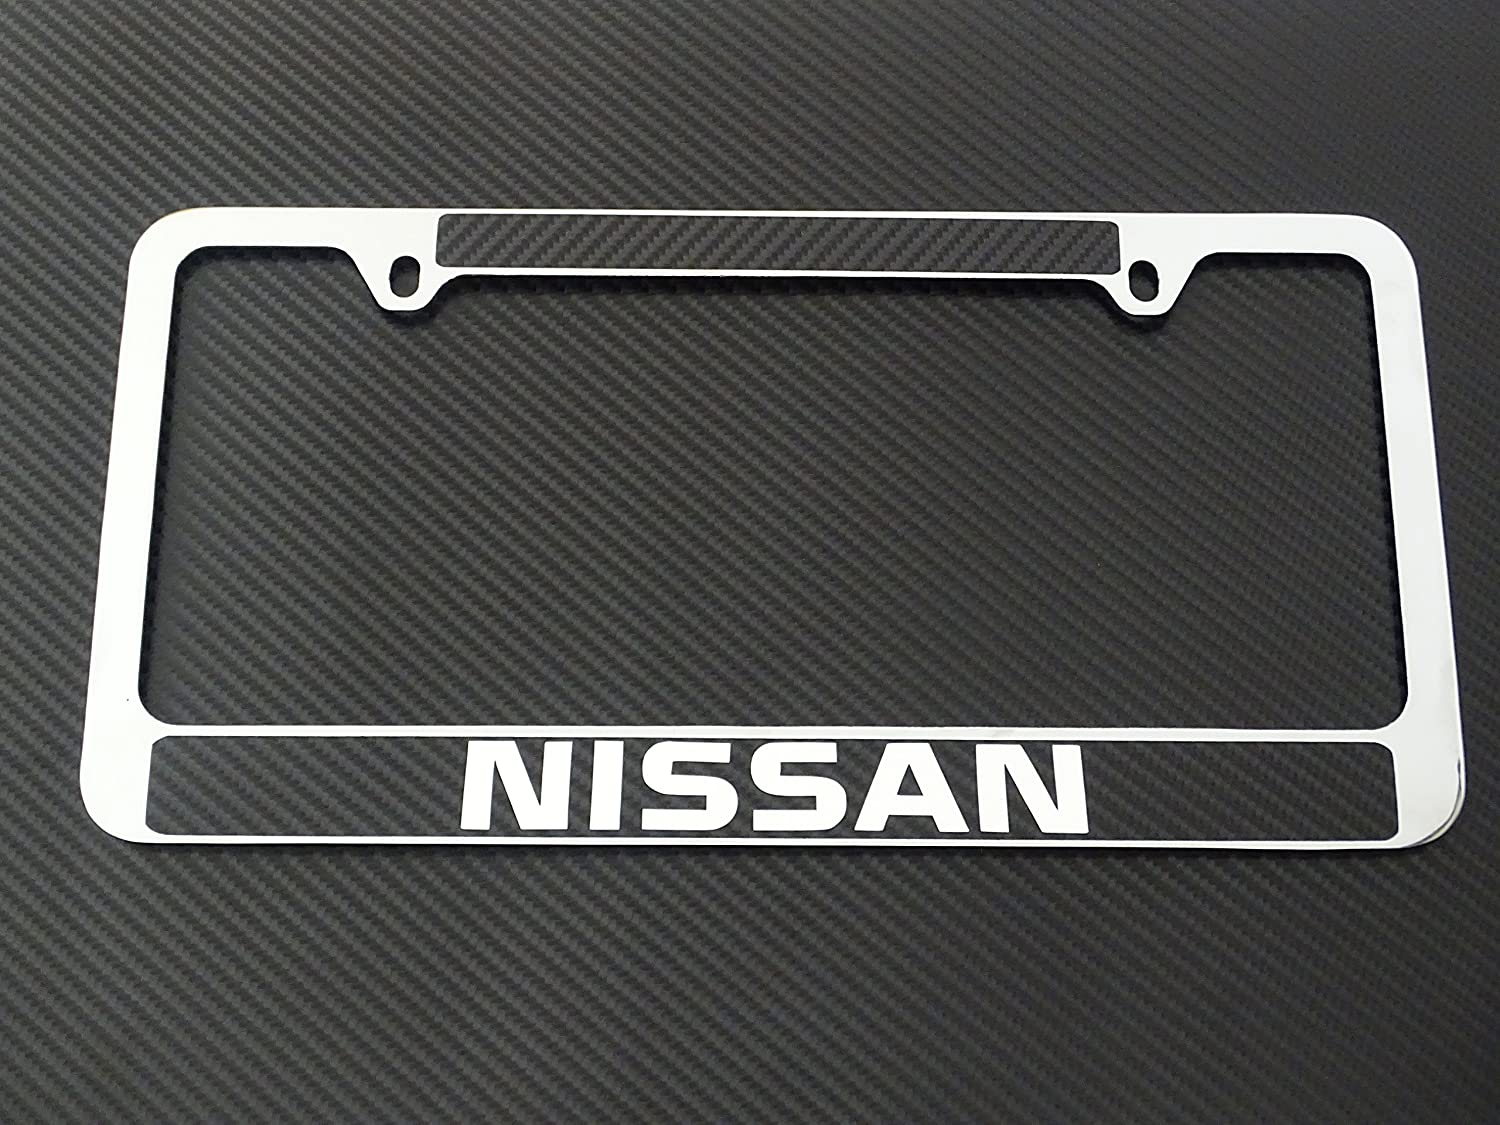 Carbon Fiber Details,Chrome Text Nissan License Plate Frame Chrome Metal